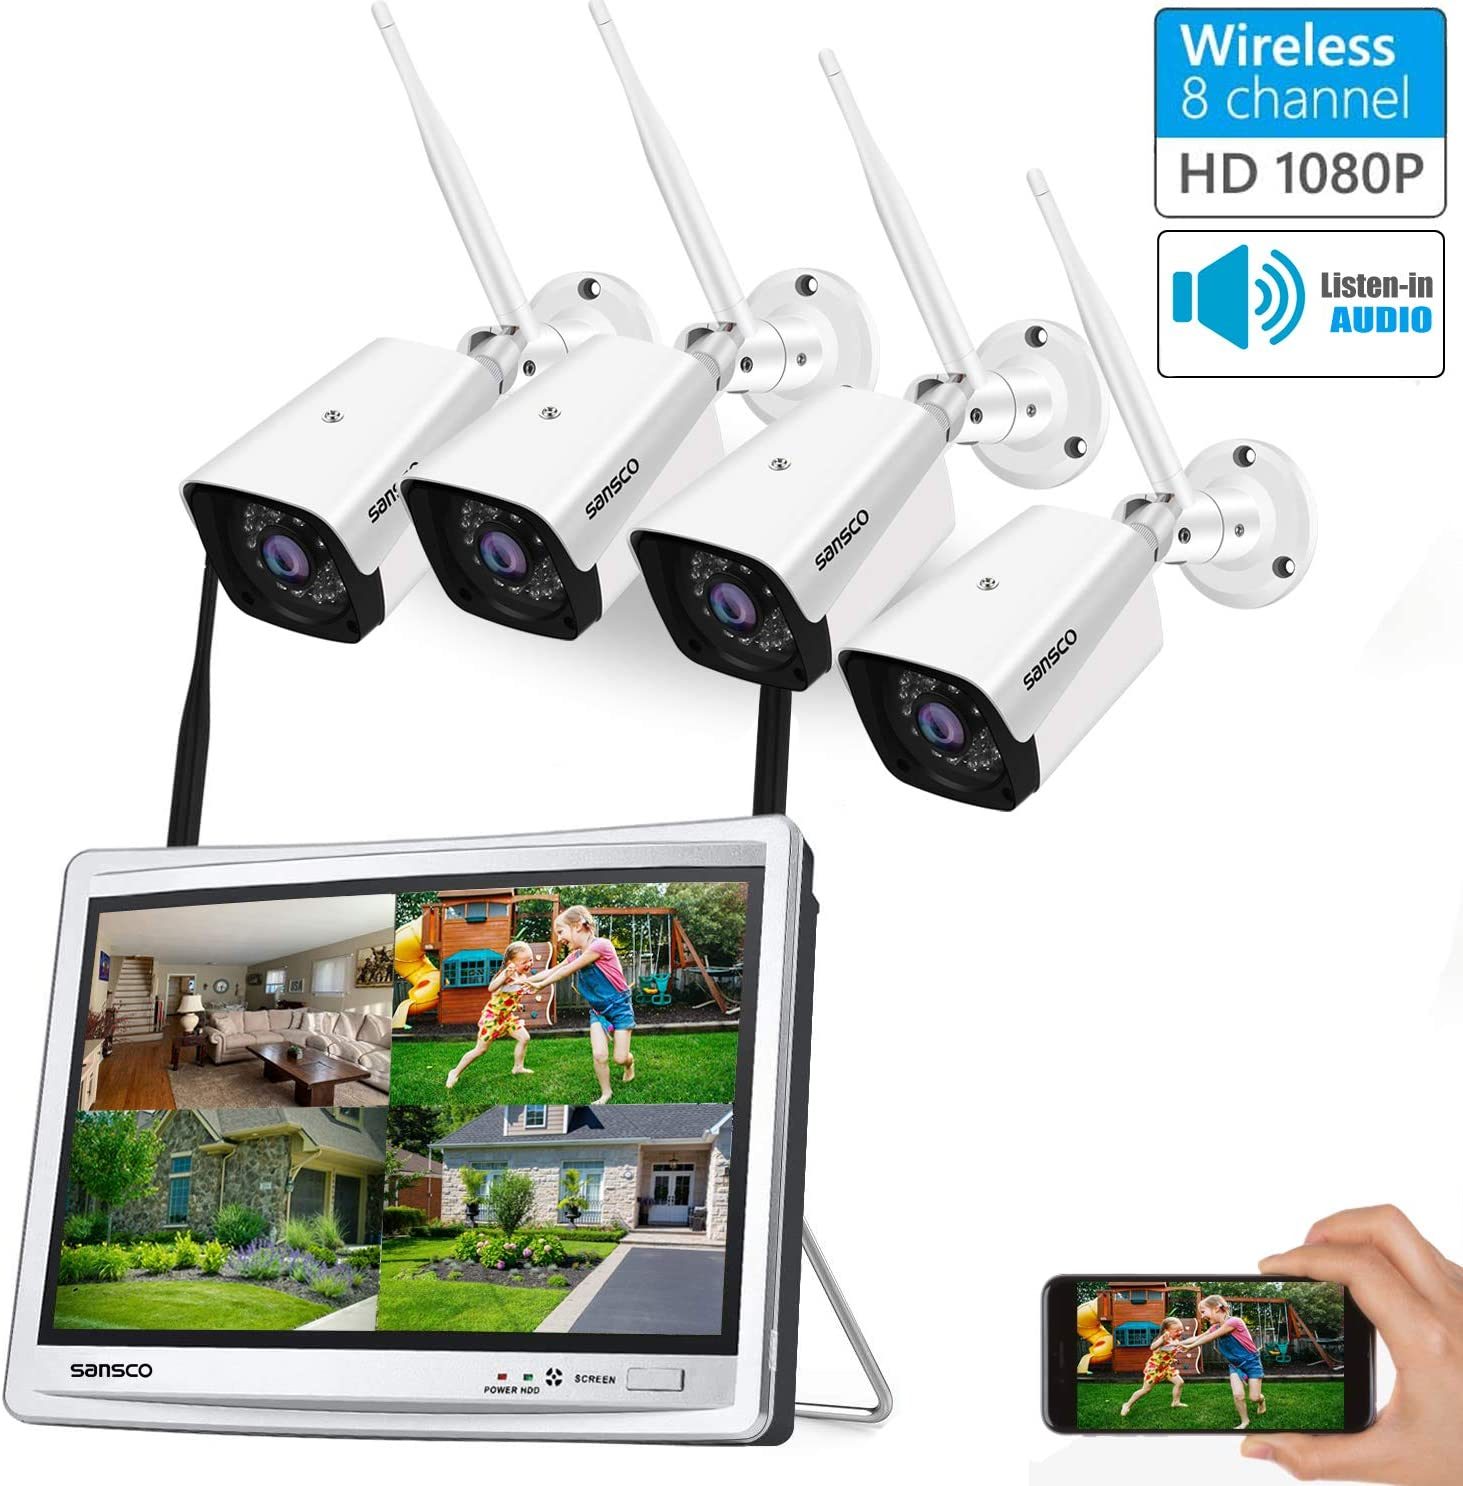 8CH Expandable SANSCO All in one with 12 HD Monitor, 1080P Wireless CCTV Security Camera System with Audio, 4X 2MP WiFi Outdoor Waterproof Camera with Mic, Night Vision, Motion Alert, NO Hard Drive